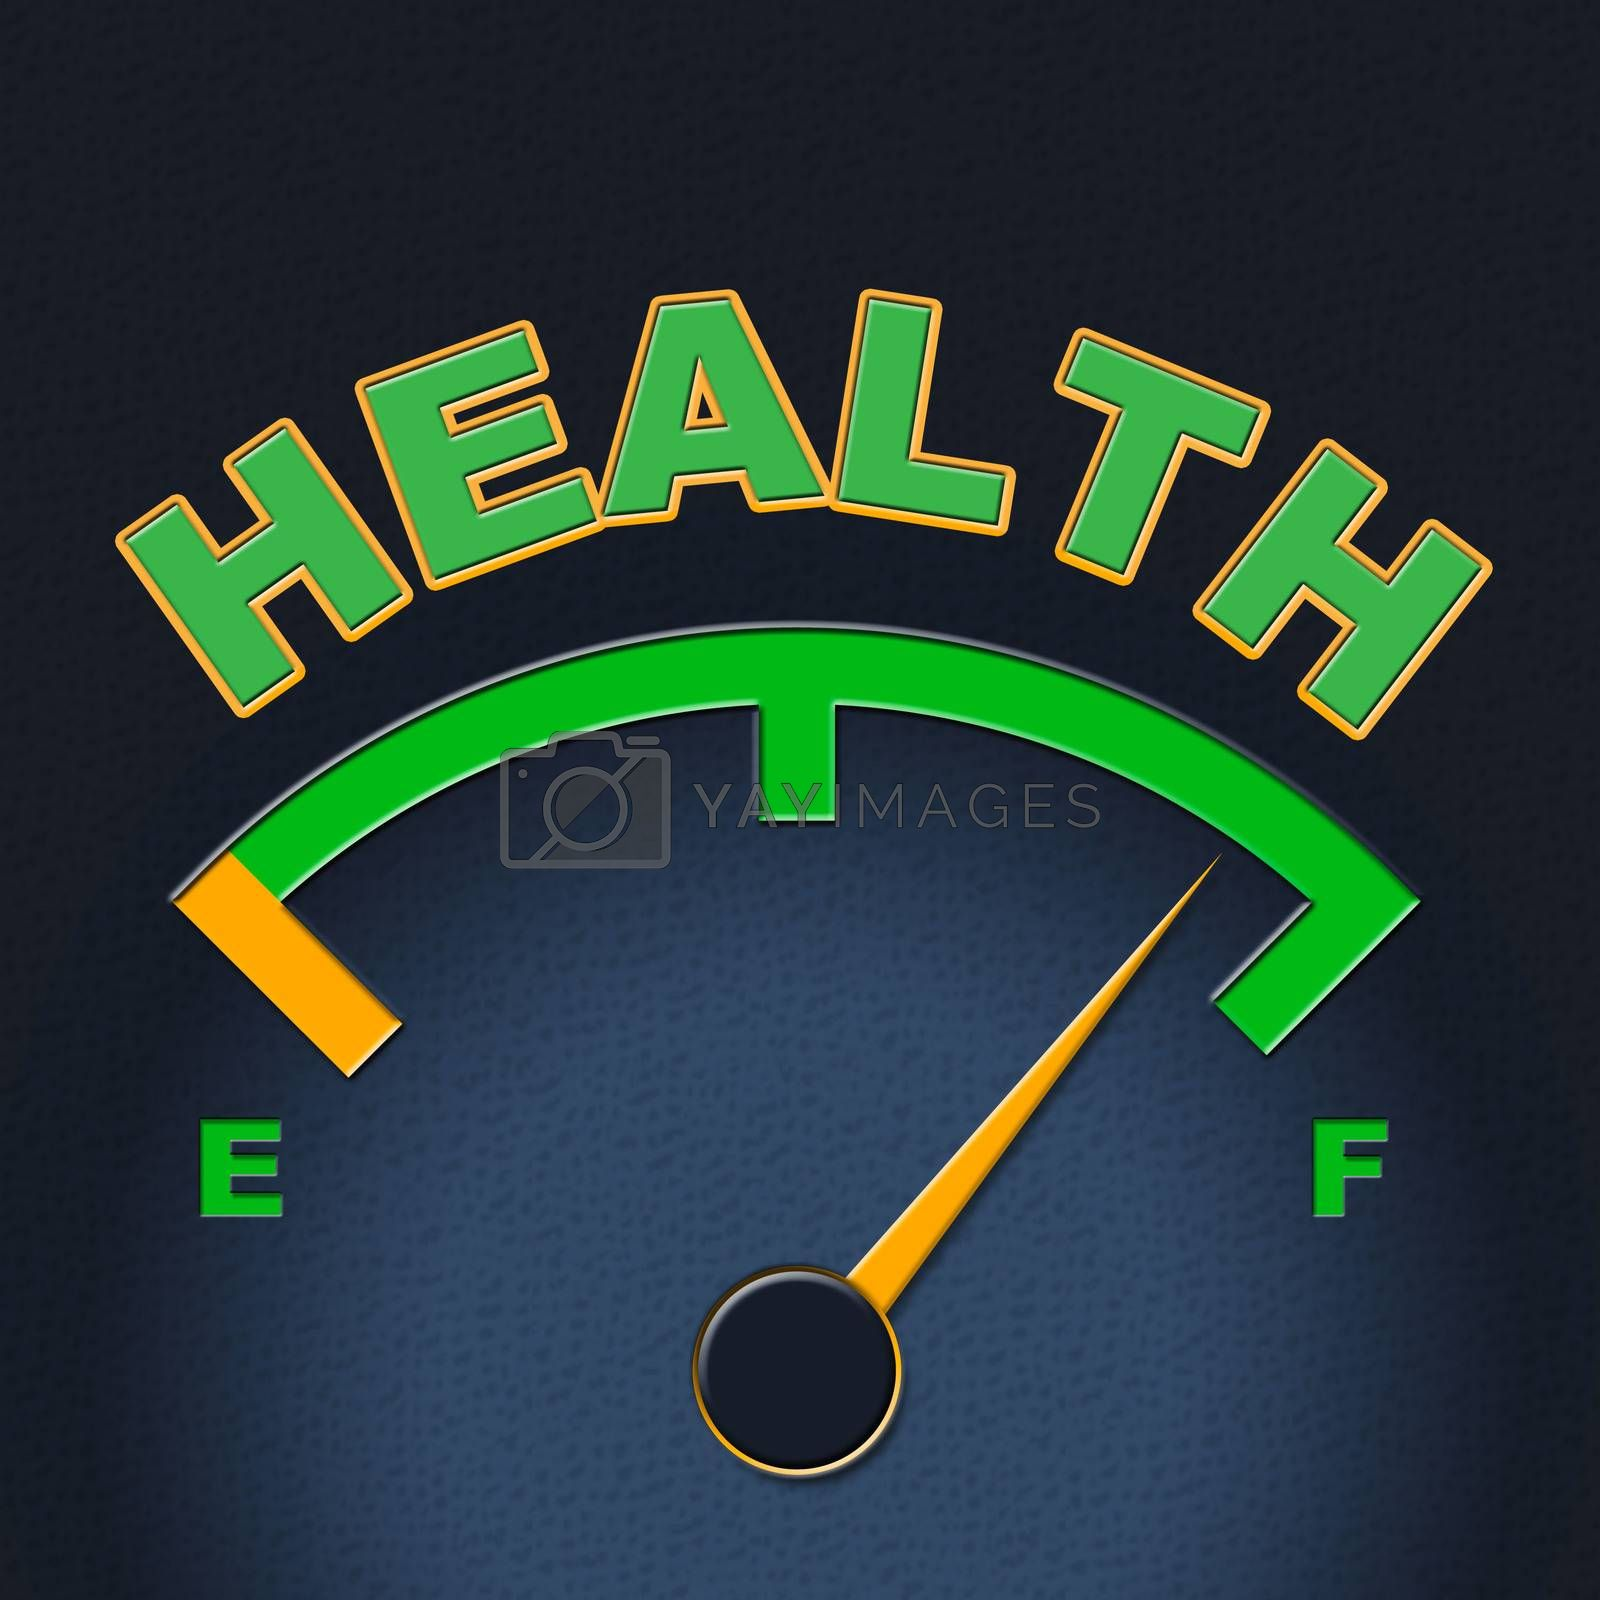 Health Gauge Indicates Preventive Medicine And Care by stuartmiles